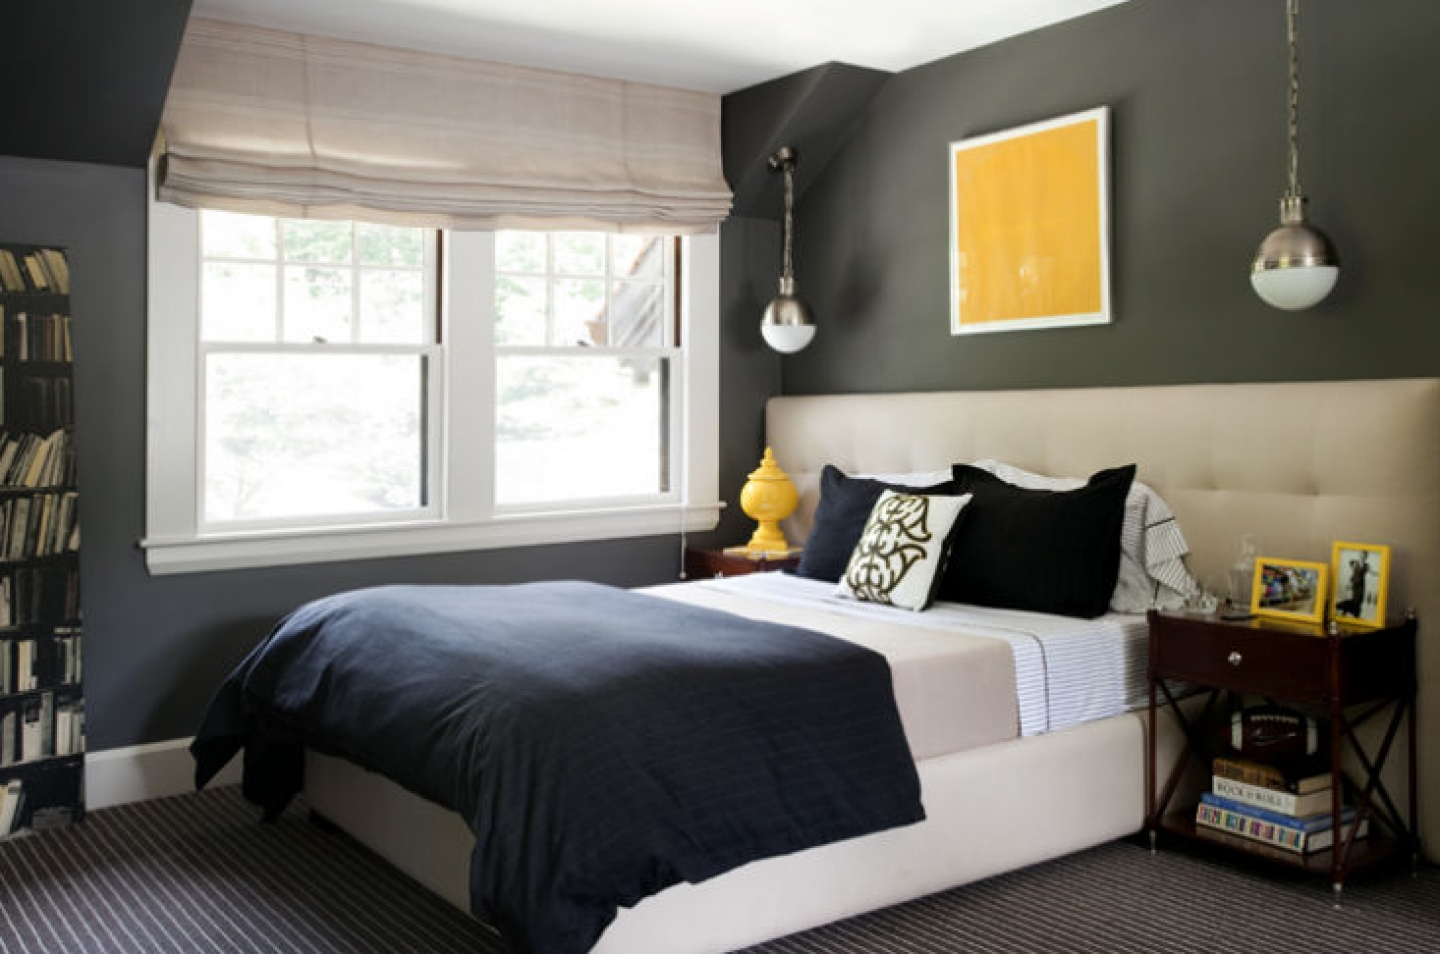 Bedroom Decorating Ideas Silver Thought Get Your Bedrooms De Designs Black And Grey G7 Webs